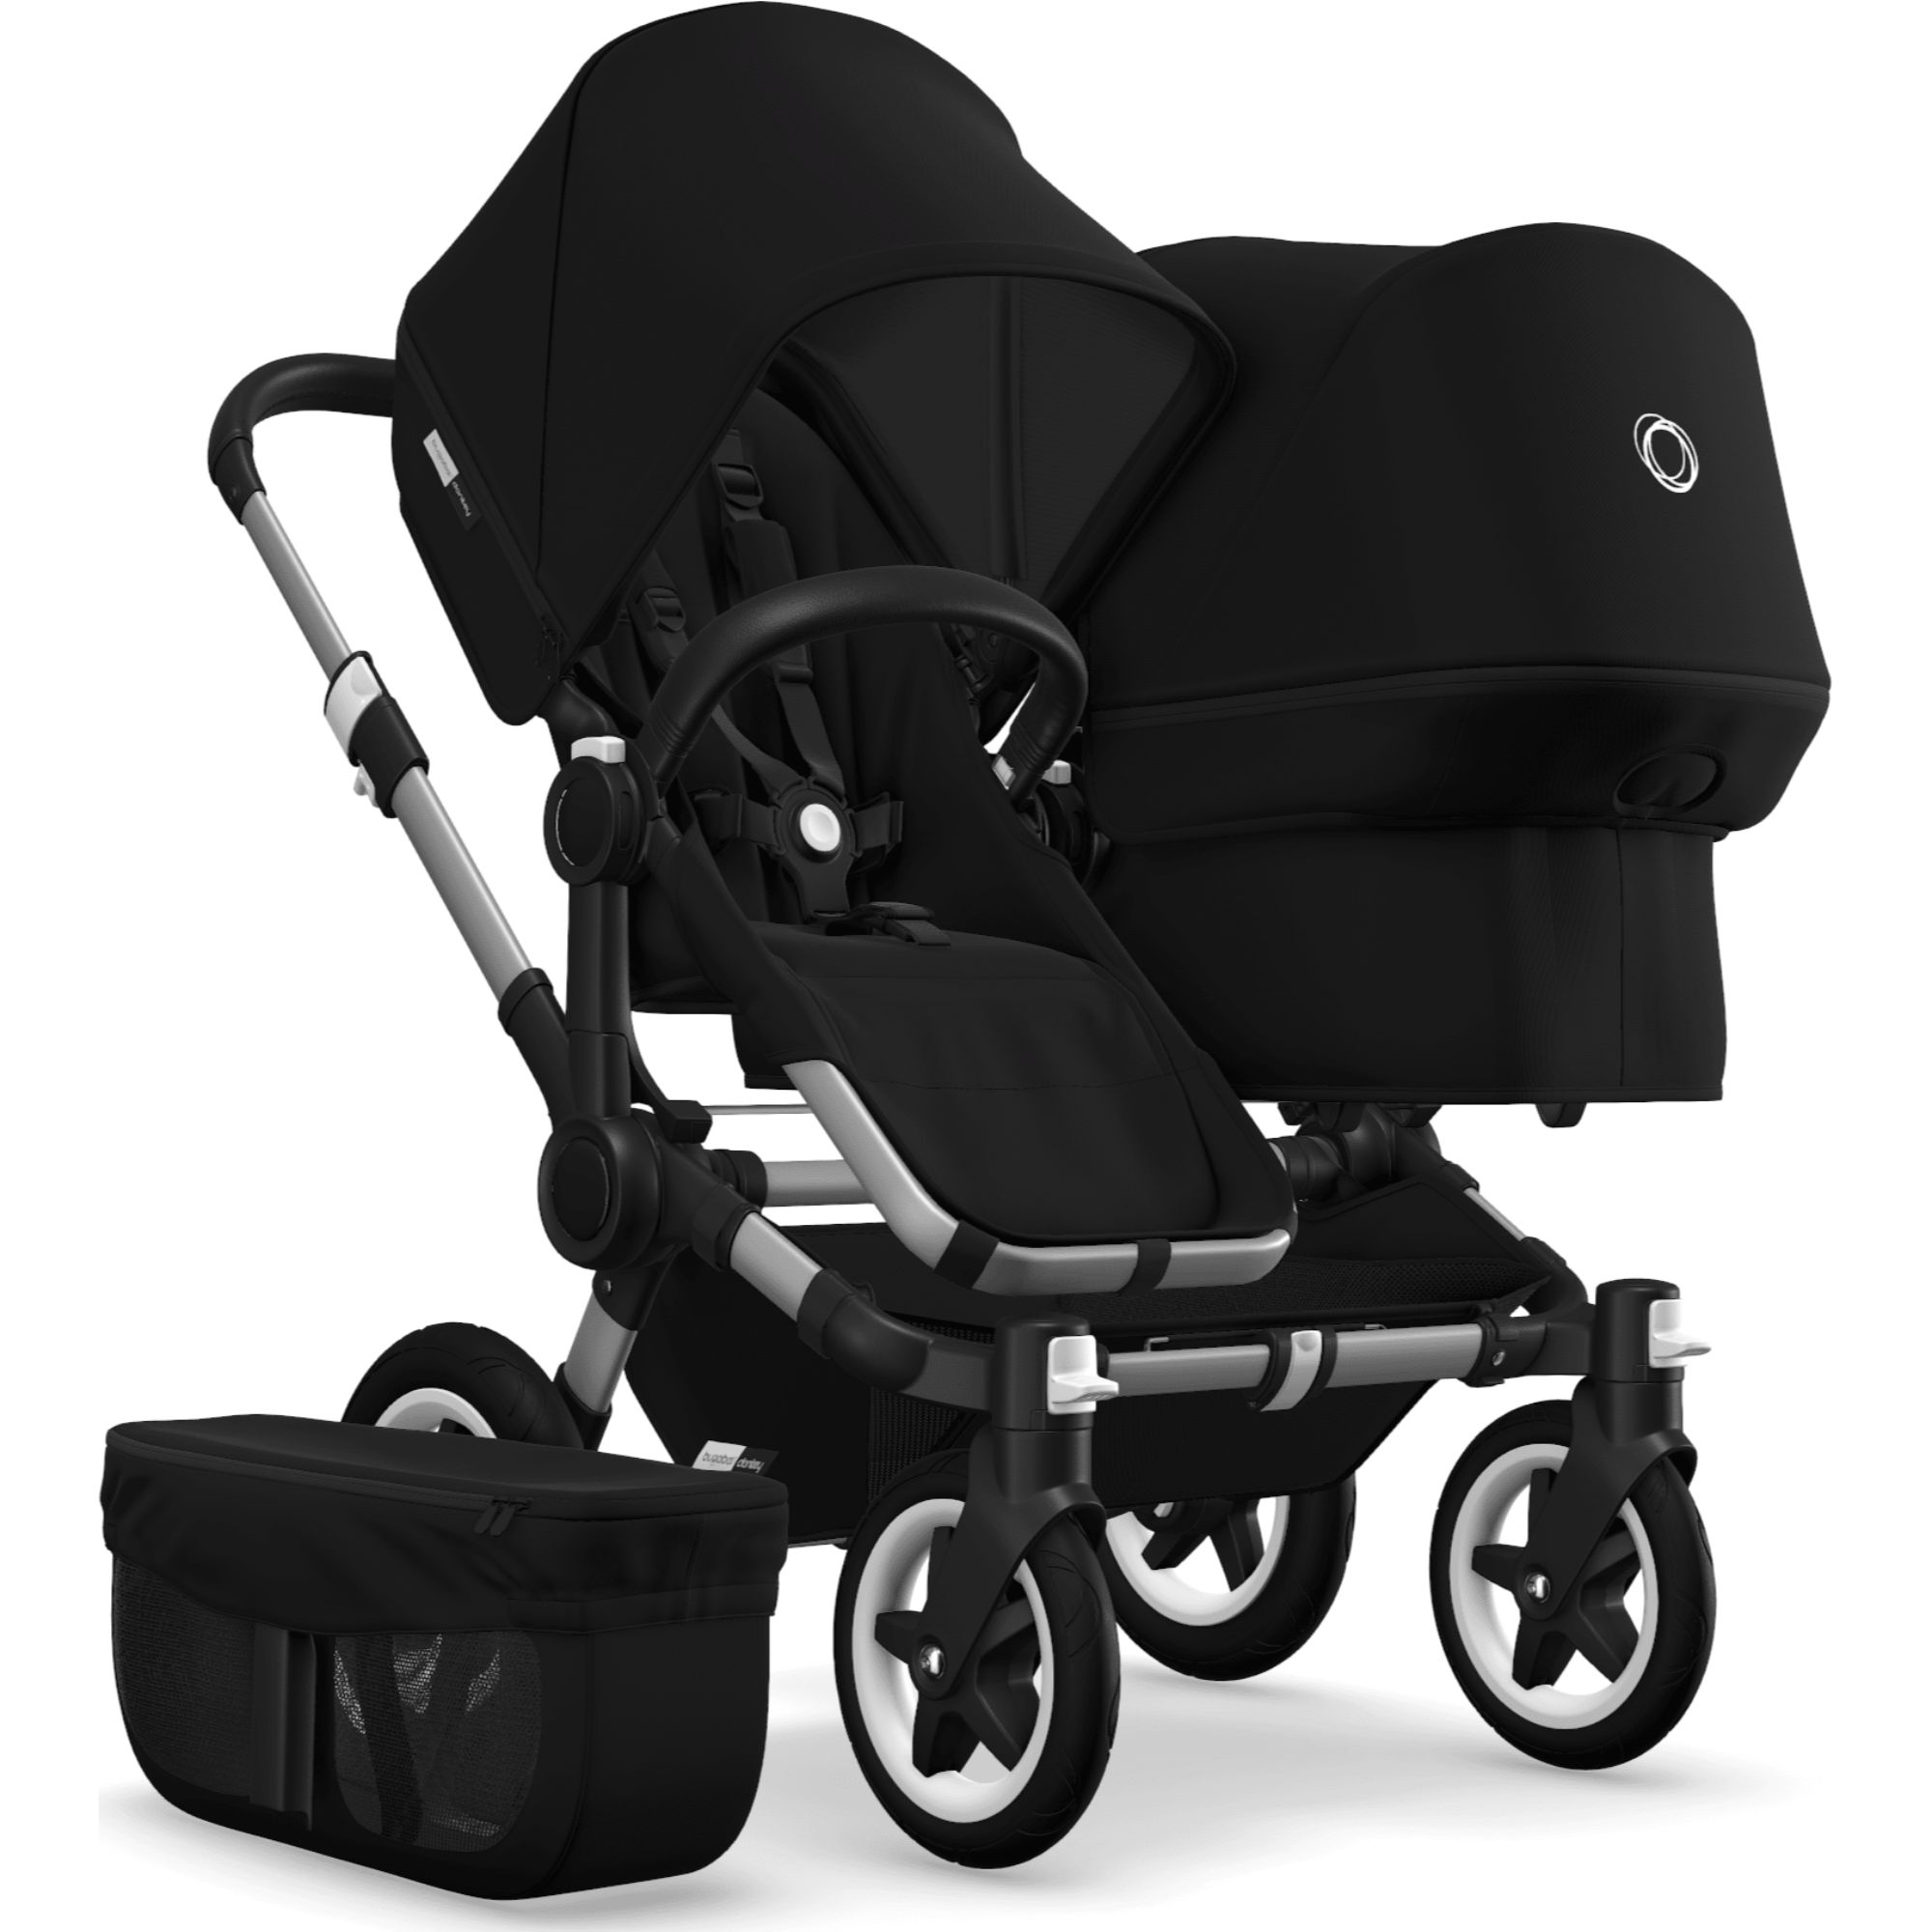 Double Pushchair Bugaboo Details About Bugaboo Donkey 2 Duo Stroller Double Pushchair Aluminium Chassis